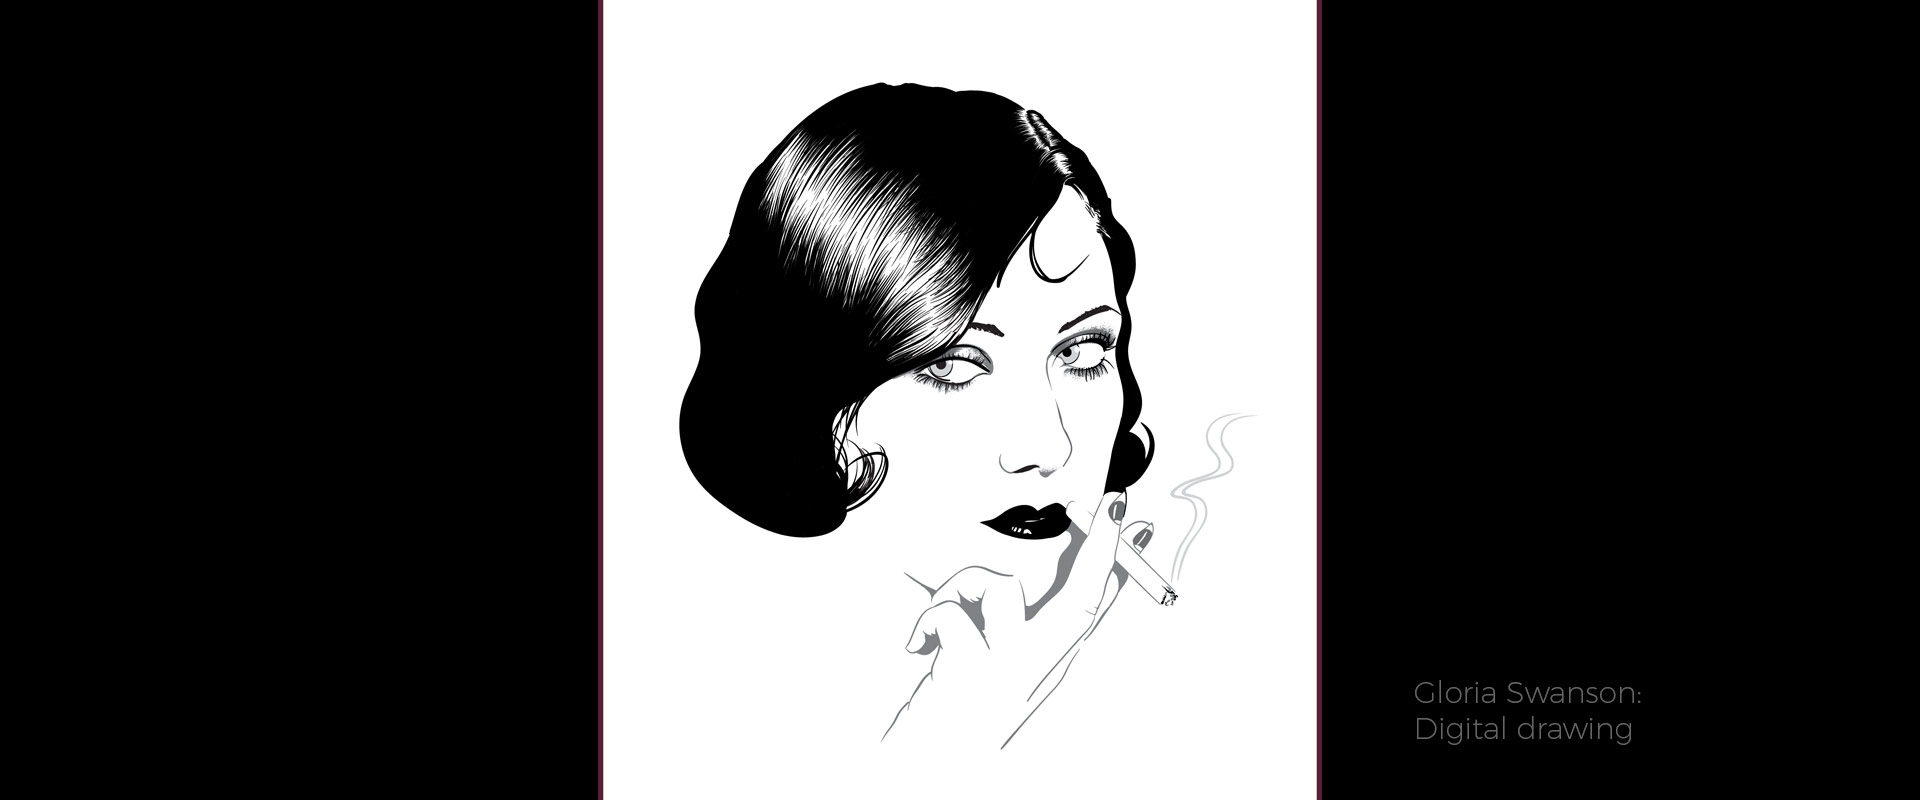 Gloria Swanson, illustration by David Hamley